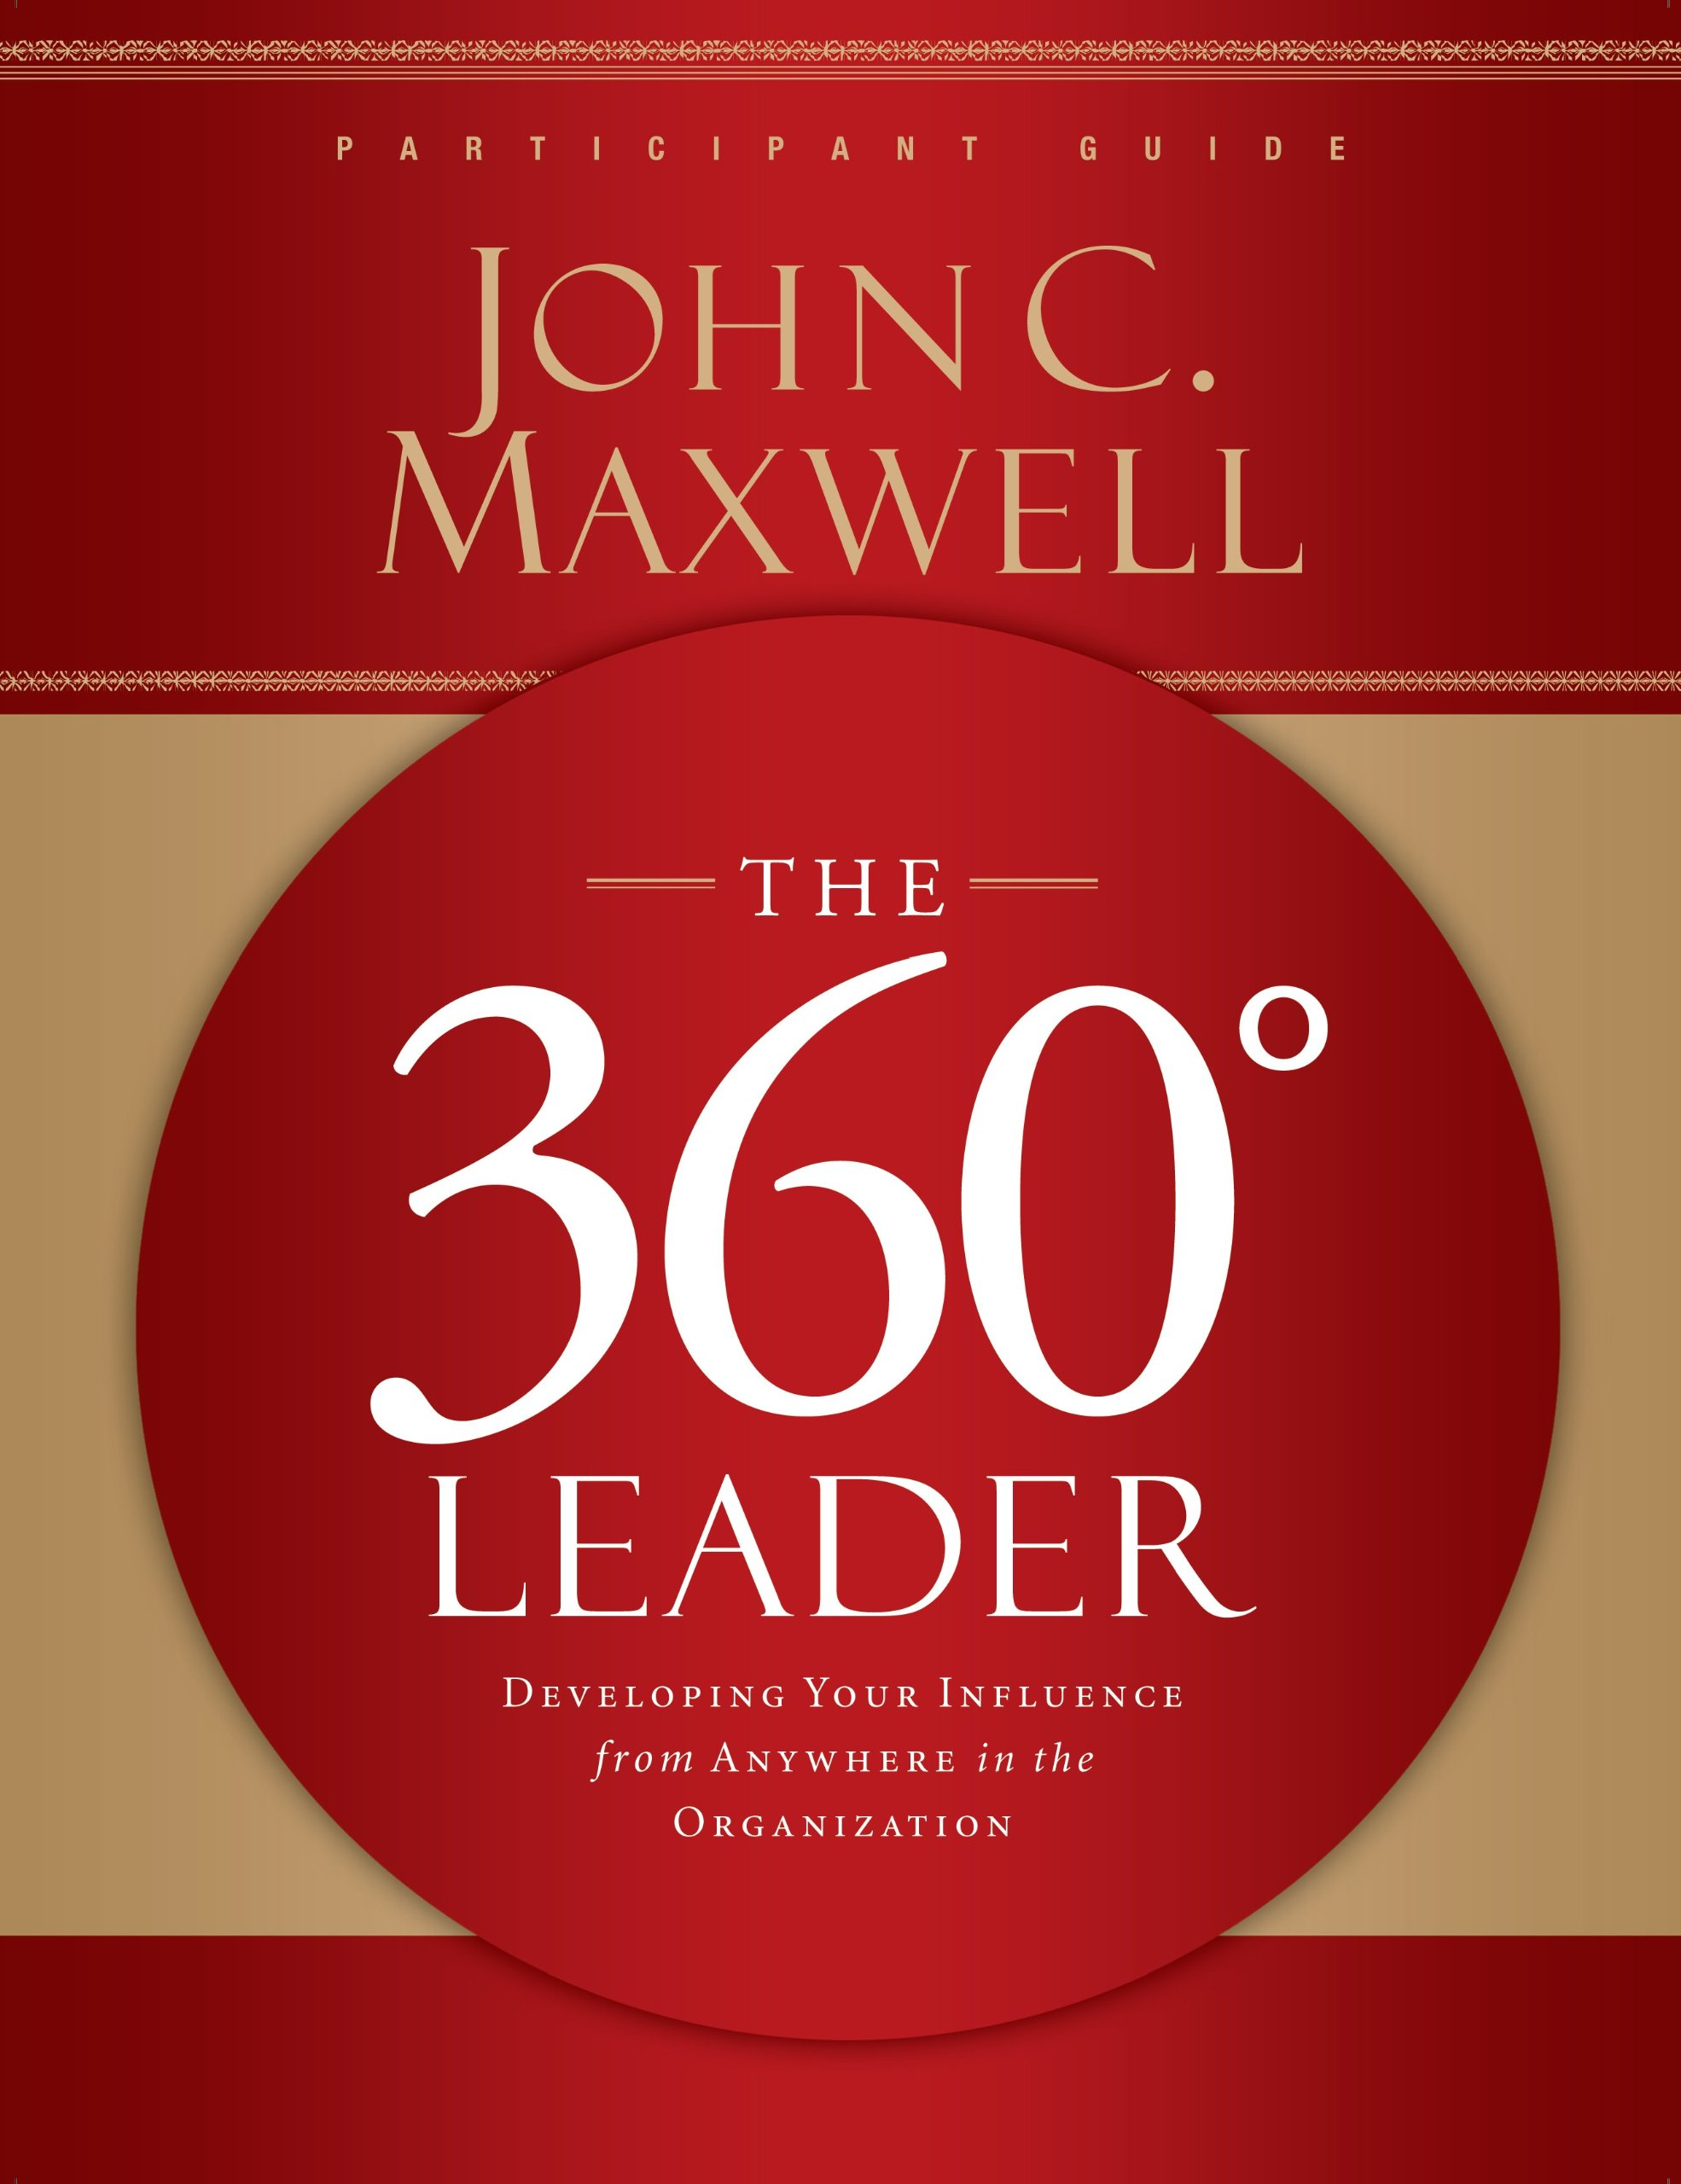 The 360° Leader Summary